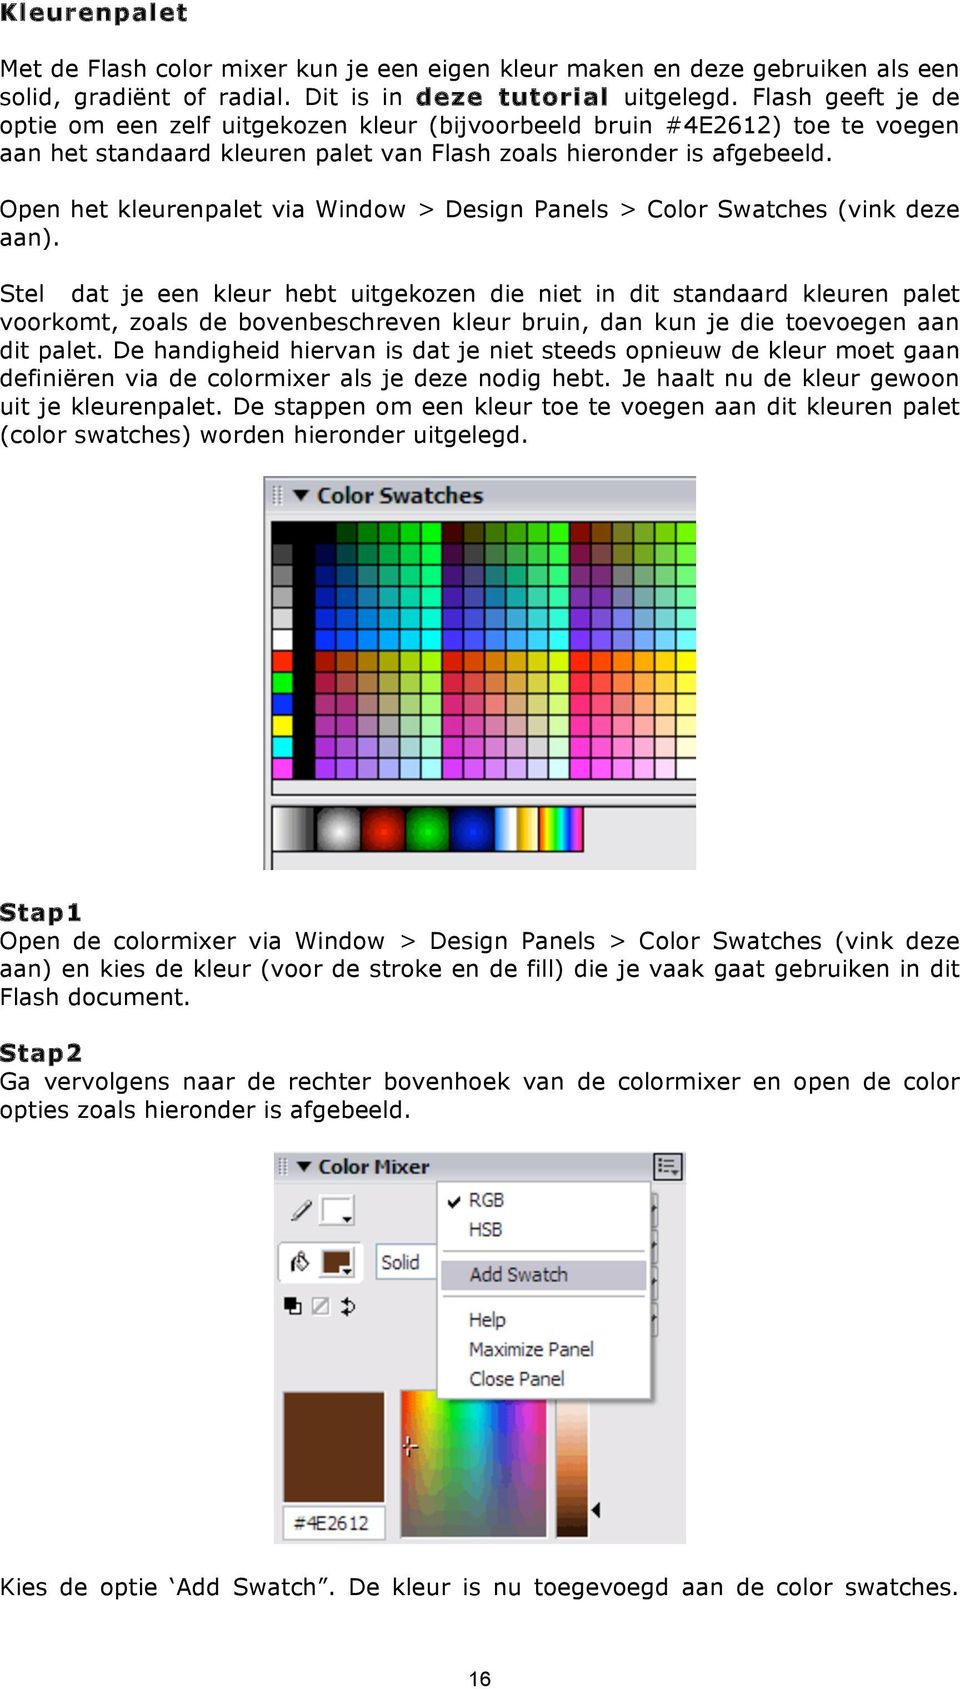 Open het kleurenpalet via Window > Design Panels > Color Swatches (vink deze aan).